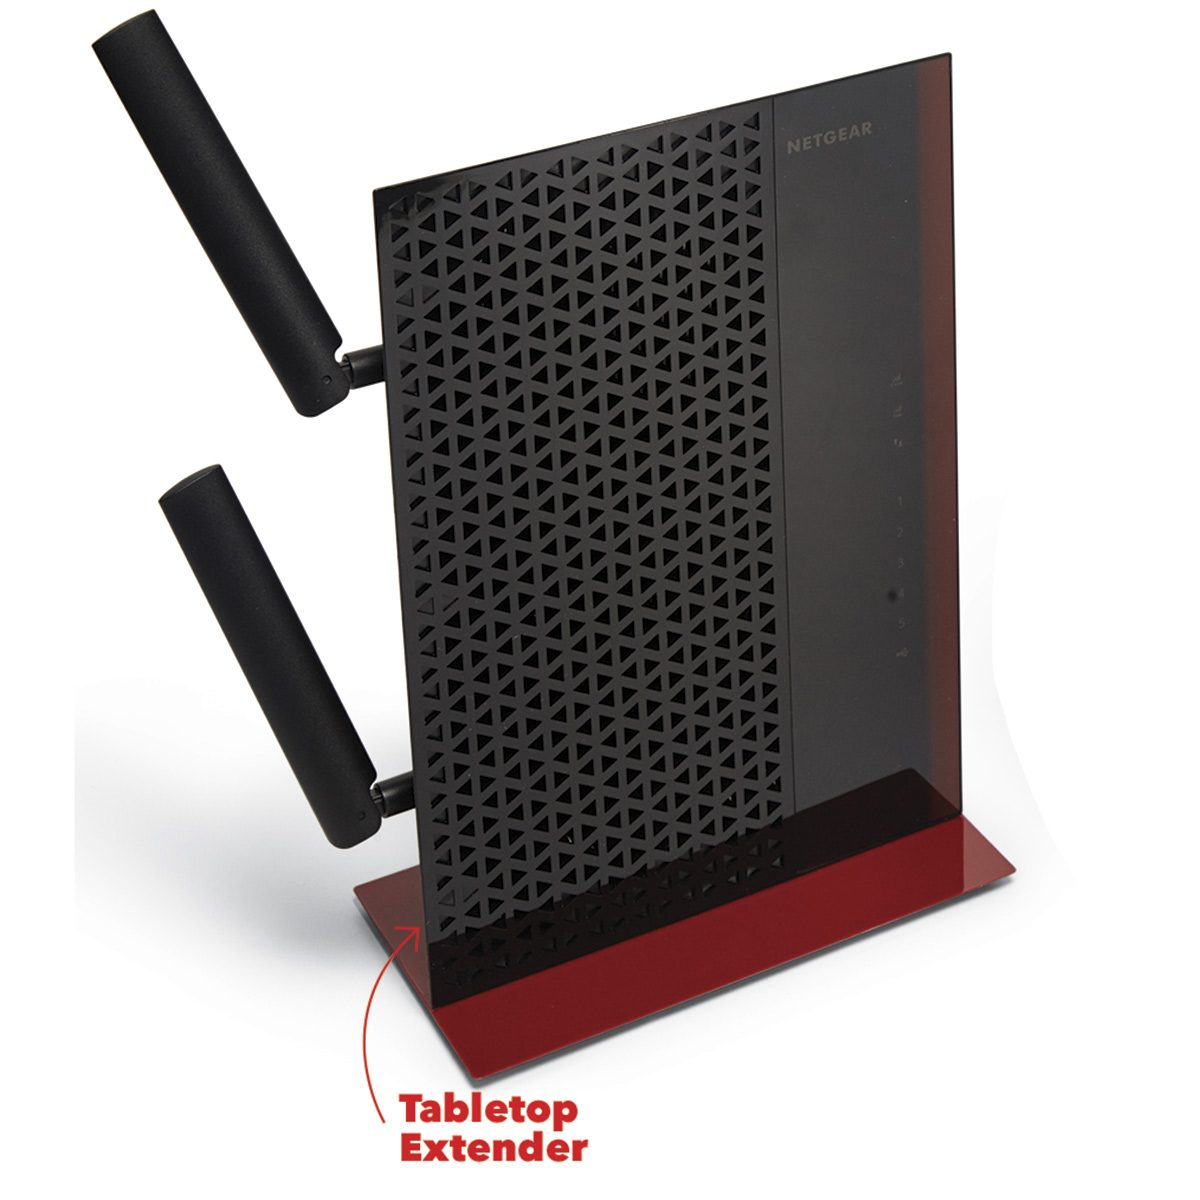 Tabletop wi-fi extender